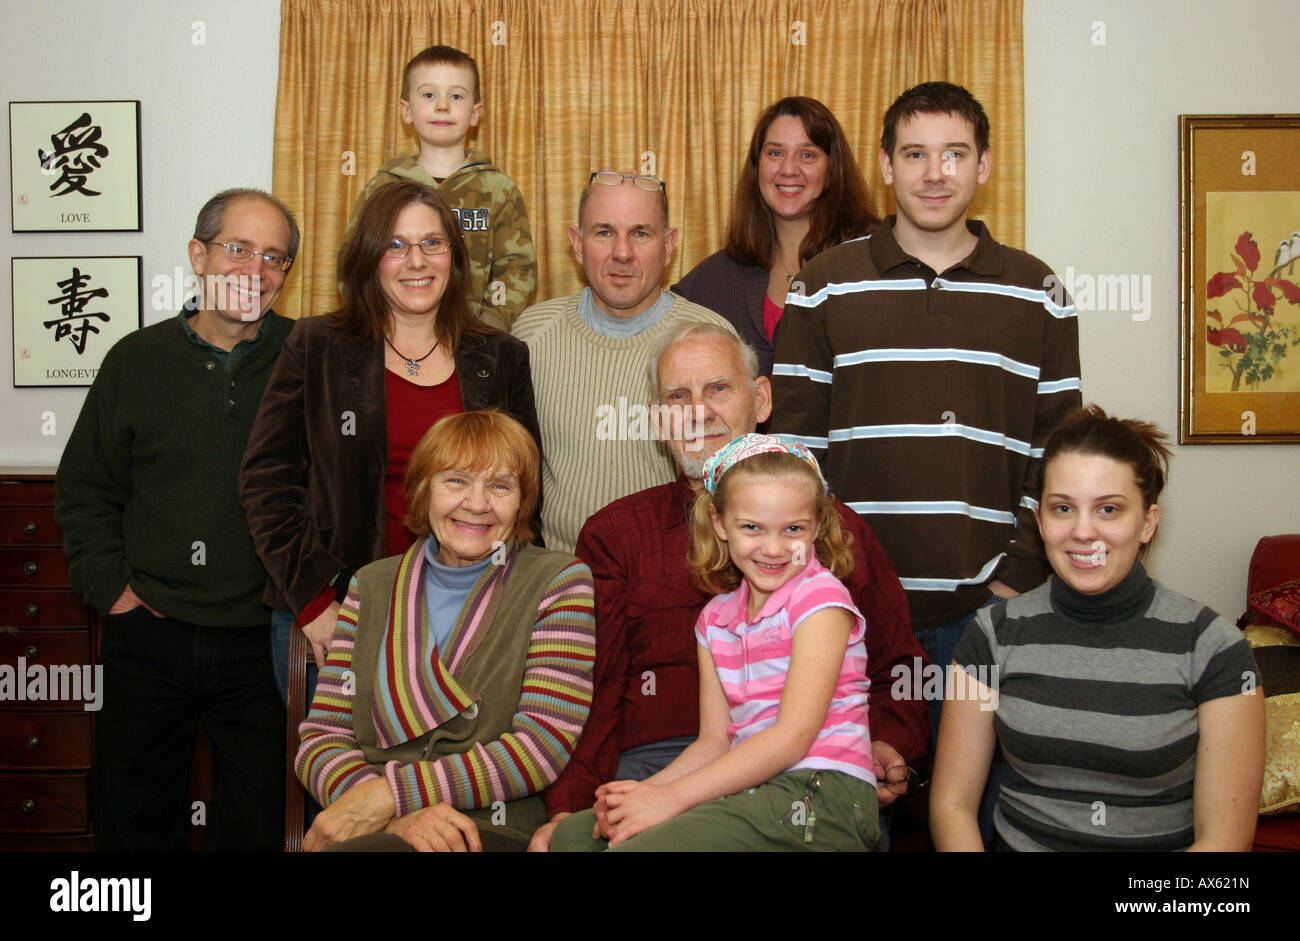 family gathering showing the generations - Stock Image